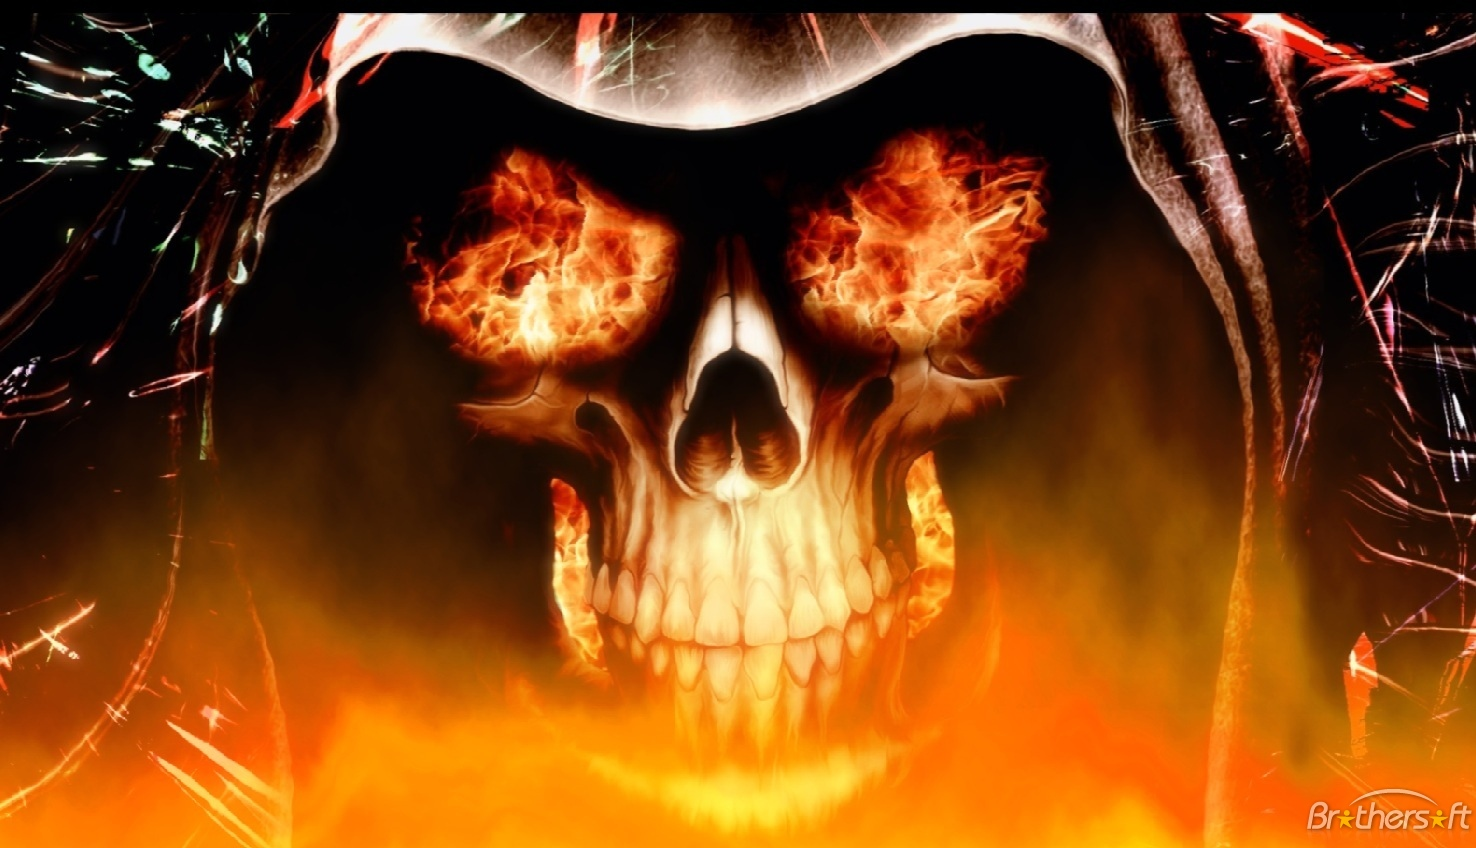 Download Fire Skull Animated Wallpaper Fire Skull Animated 1476x848